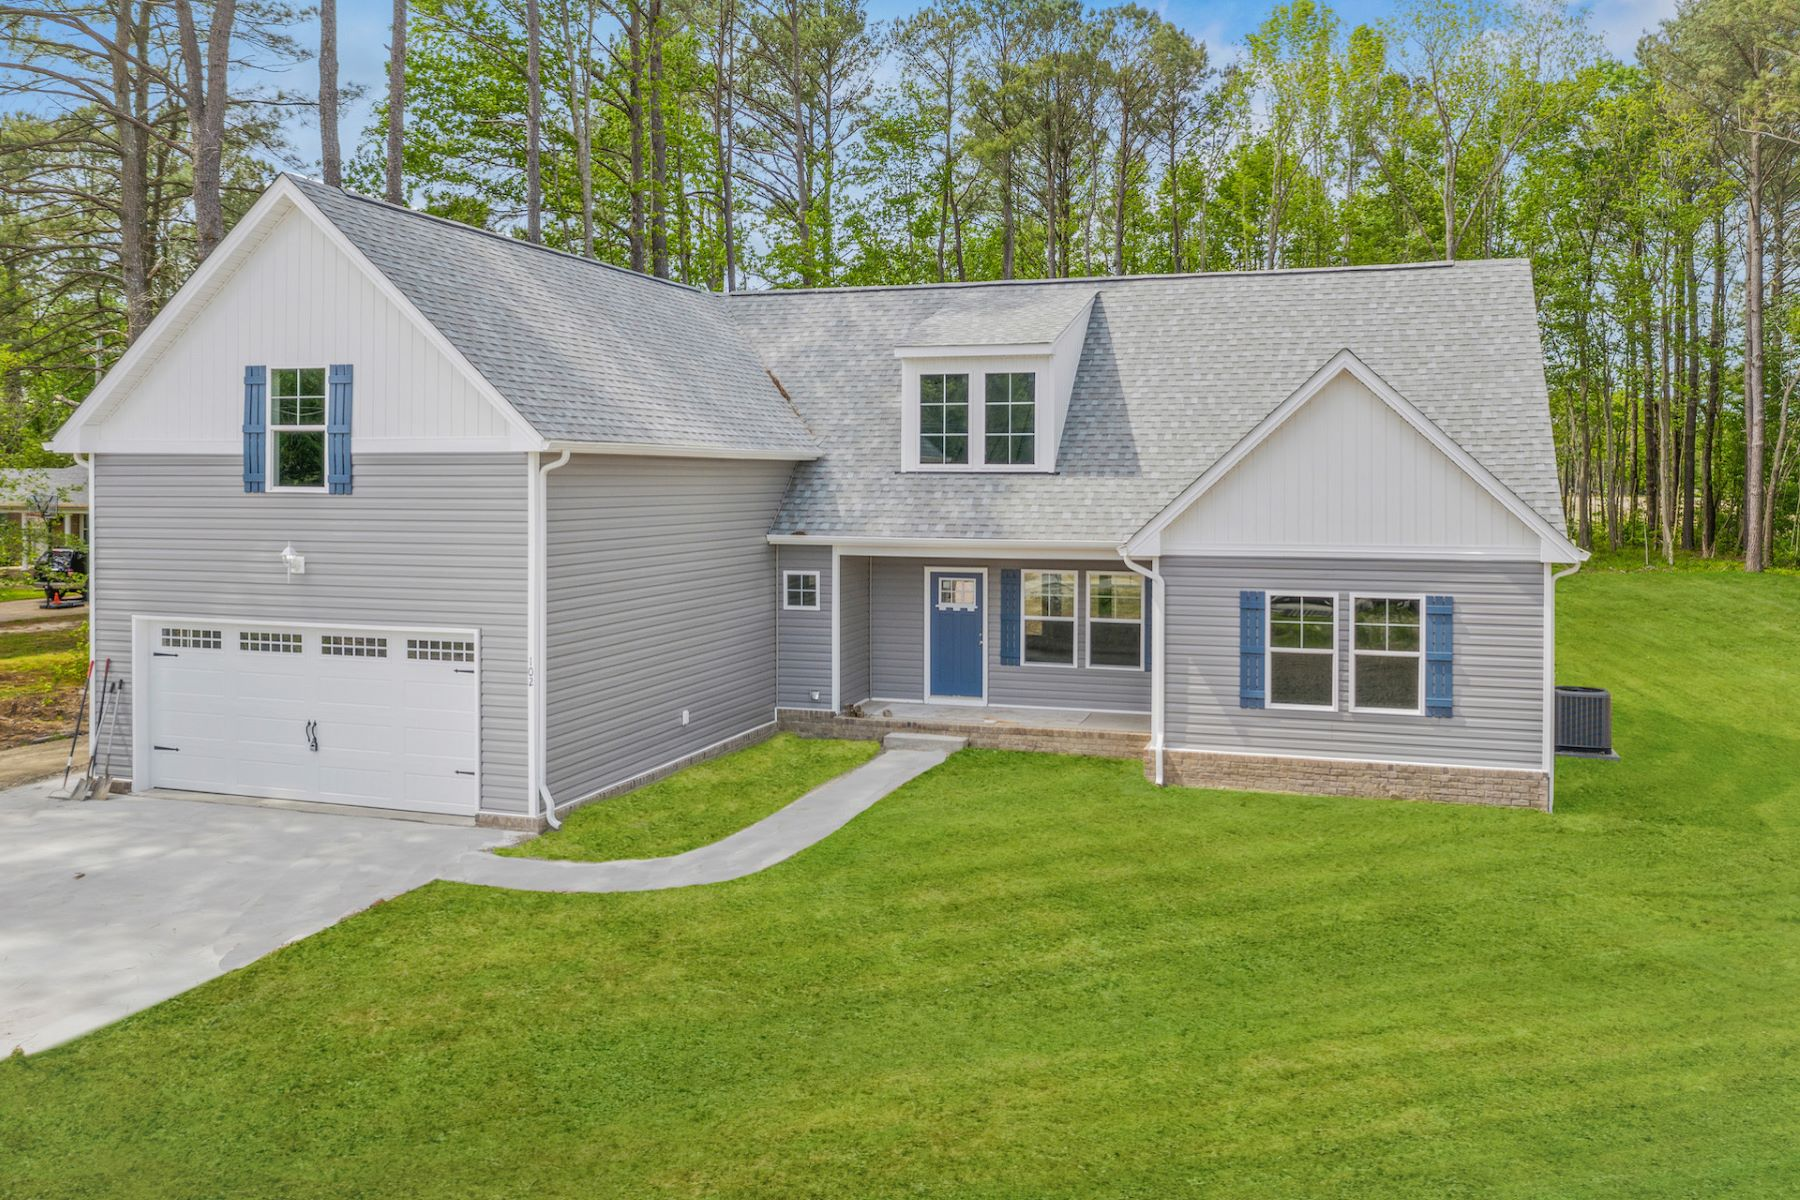 Single Family Homes for Active at CAMDEN PLANTATION 627 Old Swamp Road South Mills, North Carolina 27976 United States